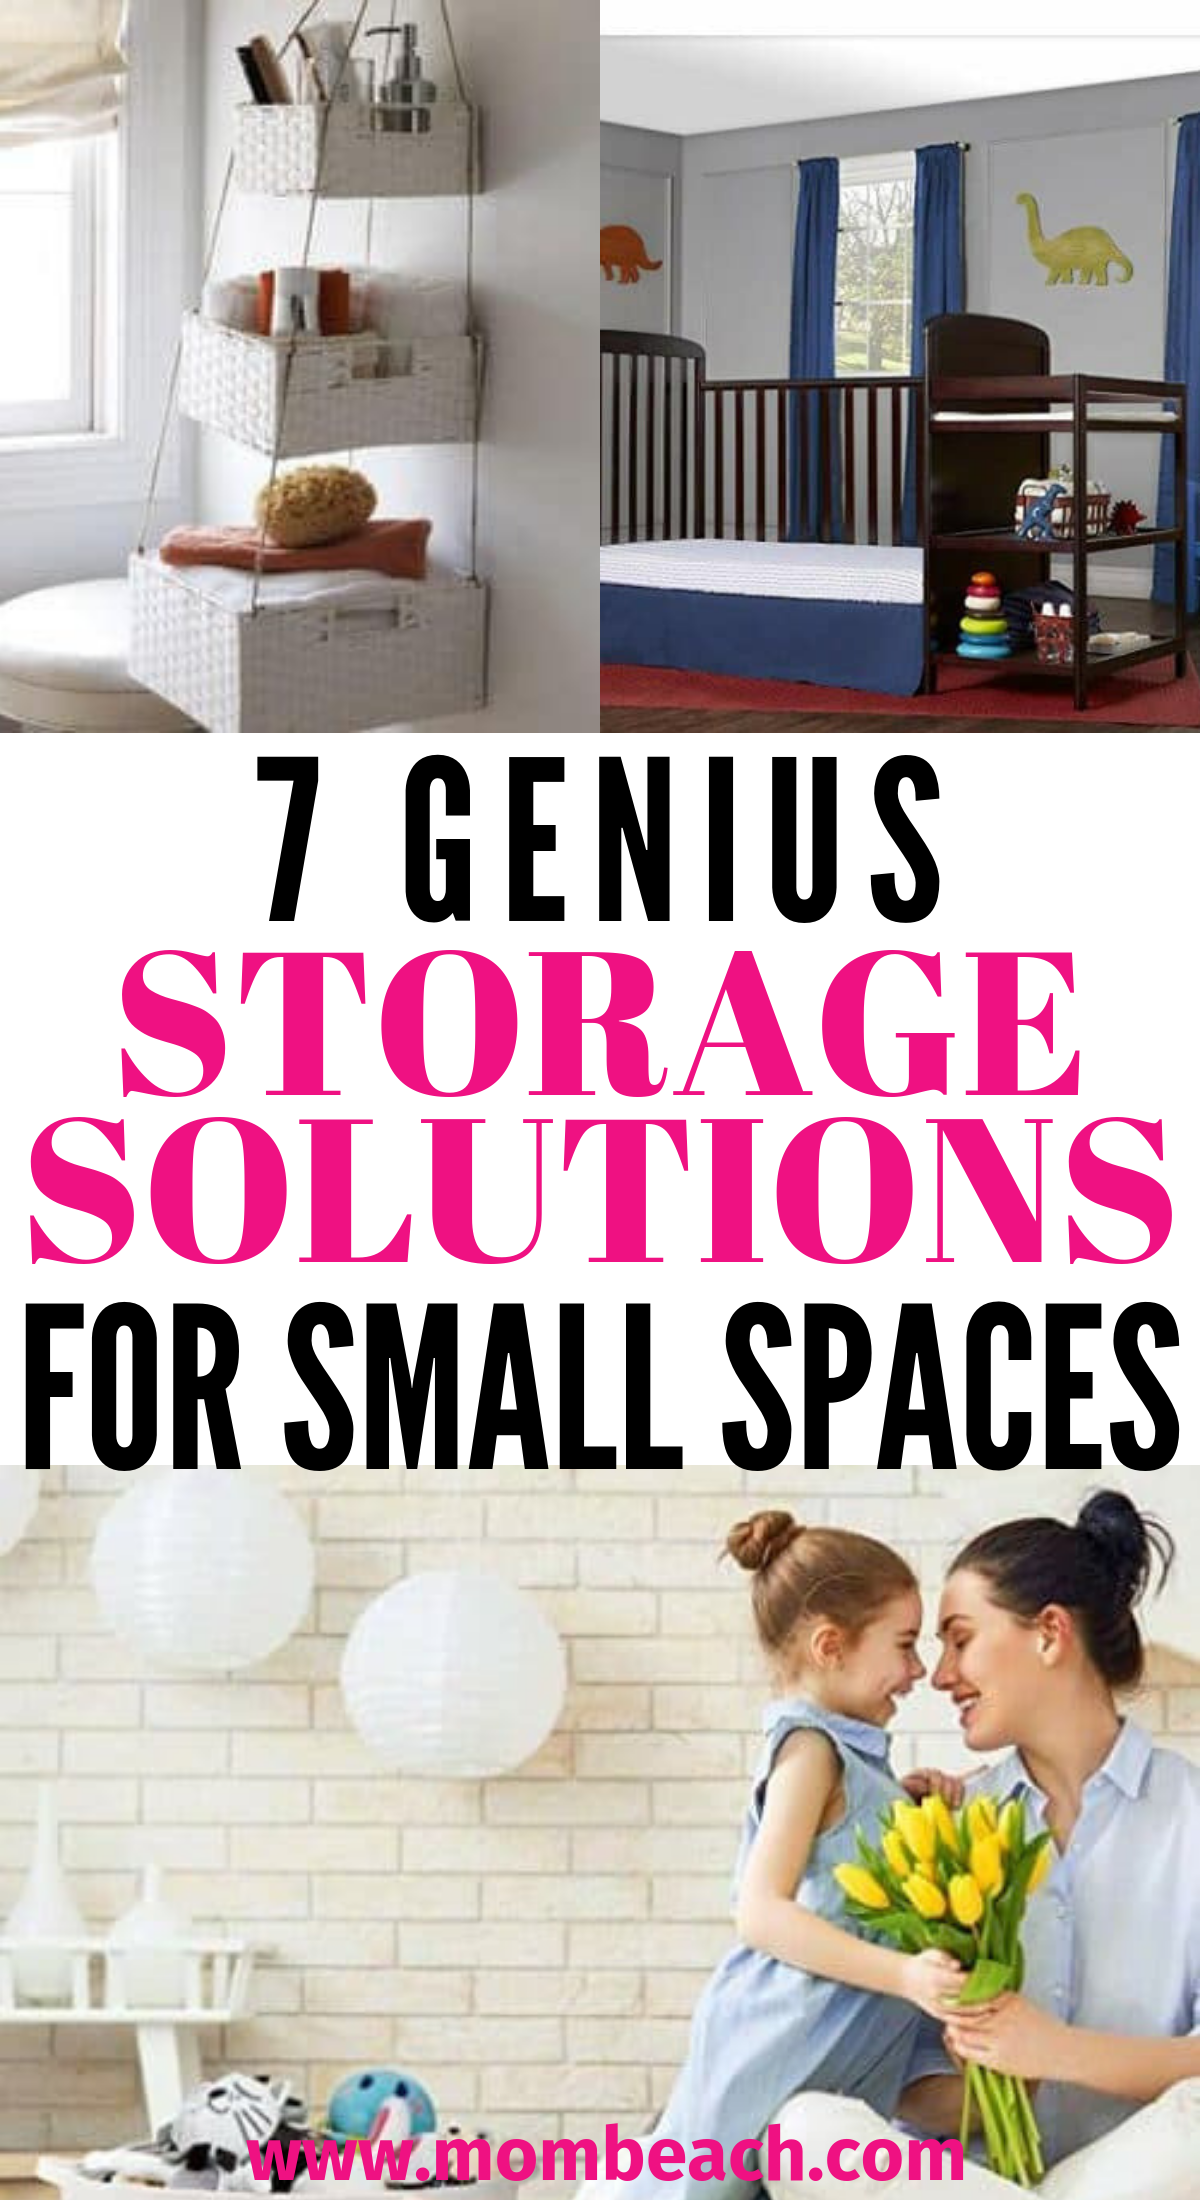 OMG these 7 awesome storage ideas for small spaces on a budget are awesome! They are all so helpful and inspiring! You can get your small space organized quickly with these simple and easy ideas to help you maximize your space. Use baskets, pallets, wipe containers and more! These storage ideas for small spaces are great for an apartment, or tiny houses. #storageideasforsmallspaces #organizationideas #storageideas #tinyhousestorageideas #apartmentstorageideas #organzation #storagebaskets